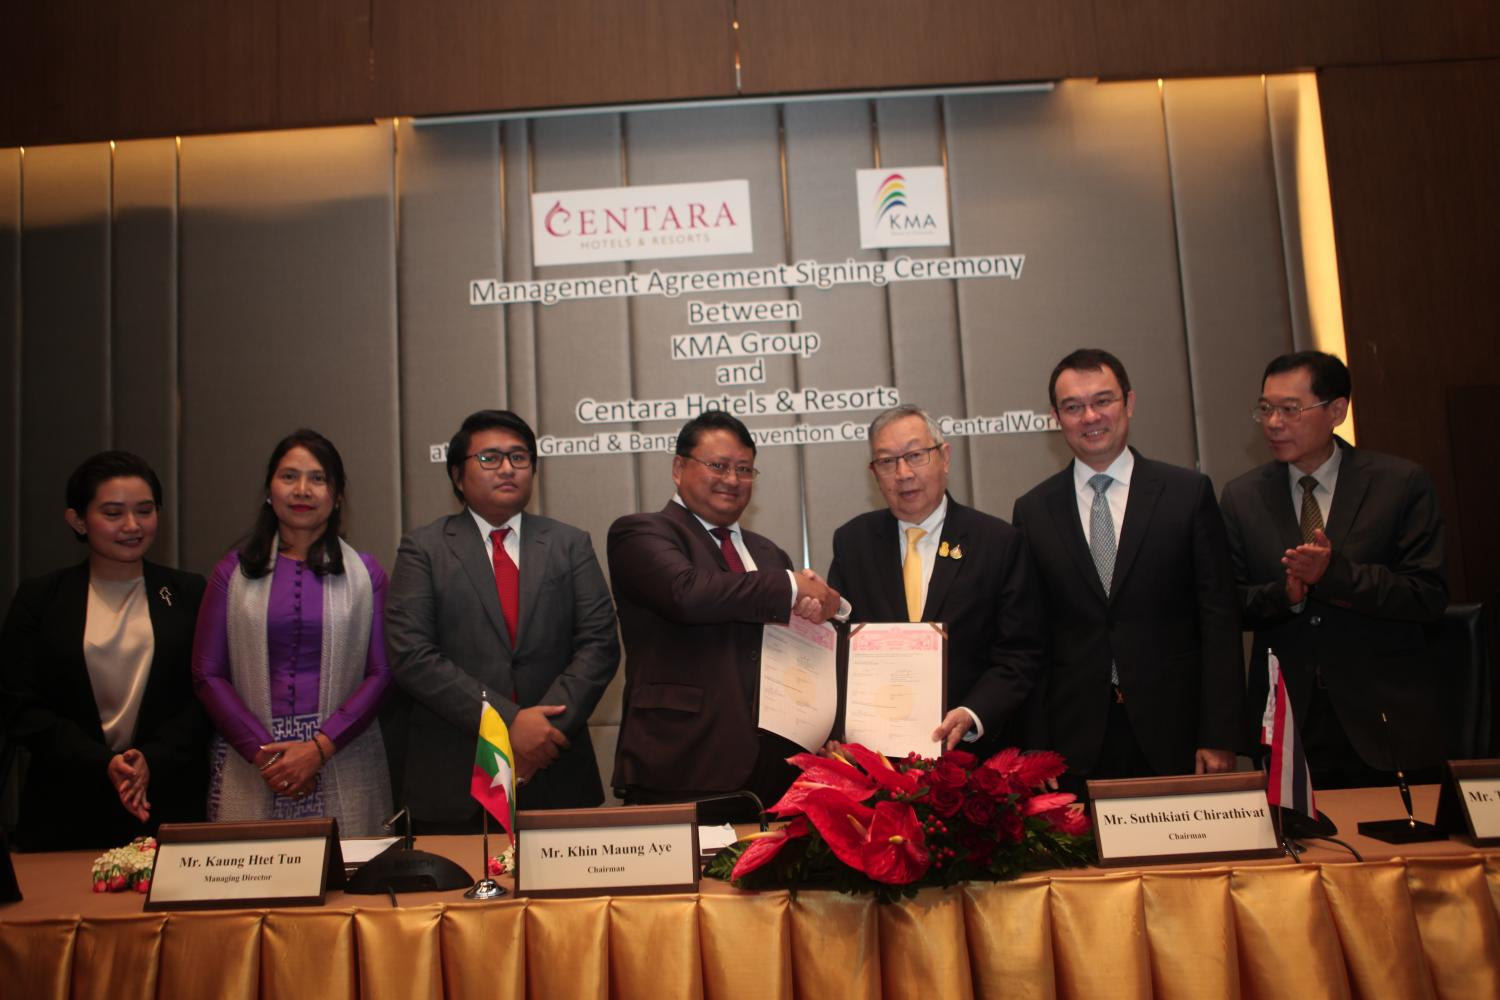 Centel chairman Suthikiati Chirathivat (third right), KMA Group chairman Khin Maung Aye (centre), Centara Hotels and Resorts CEO Thirayuth Chirathivat (second right) and Kaung Htet Tun, managing director of KMA Group (third left) at Thursday's signing ceremony.(Photo by Apichart Jinakul)